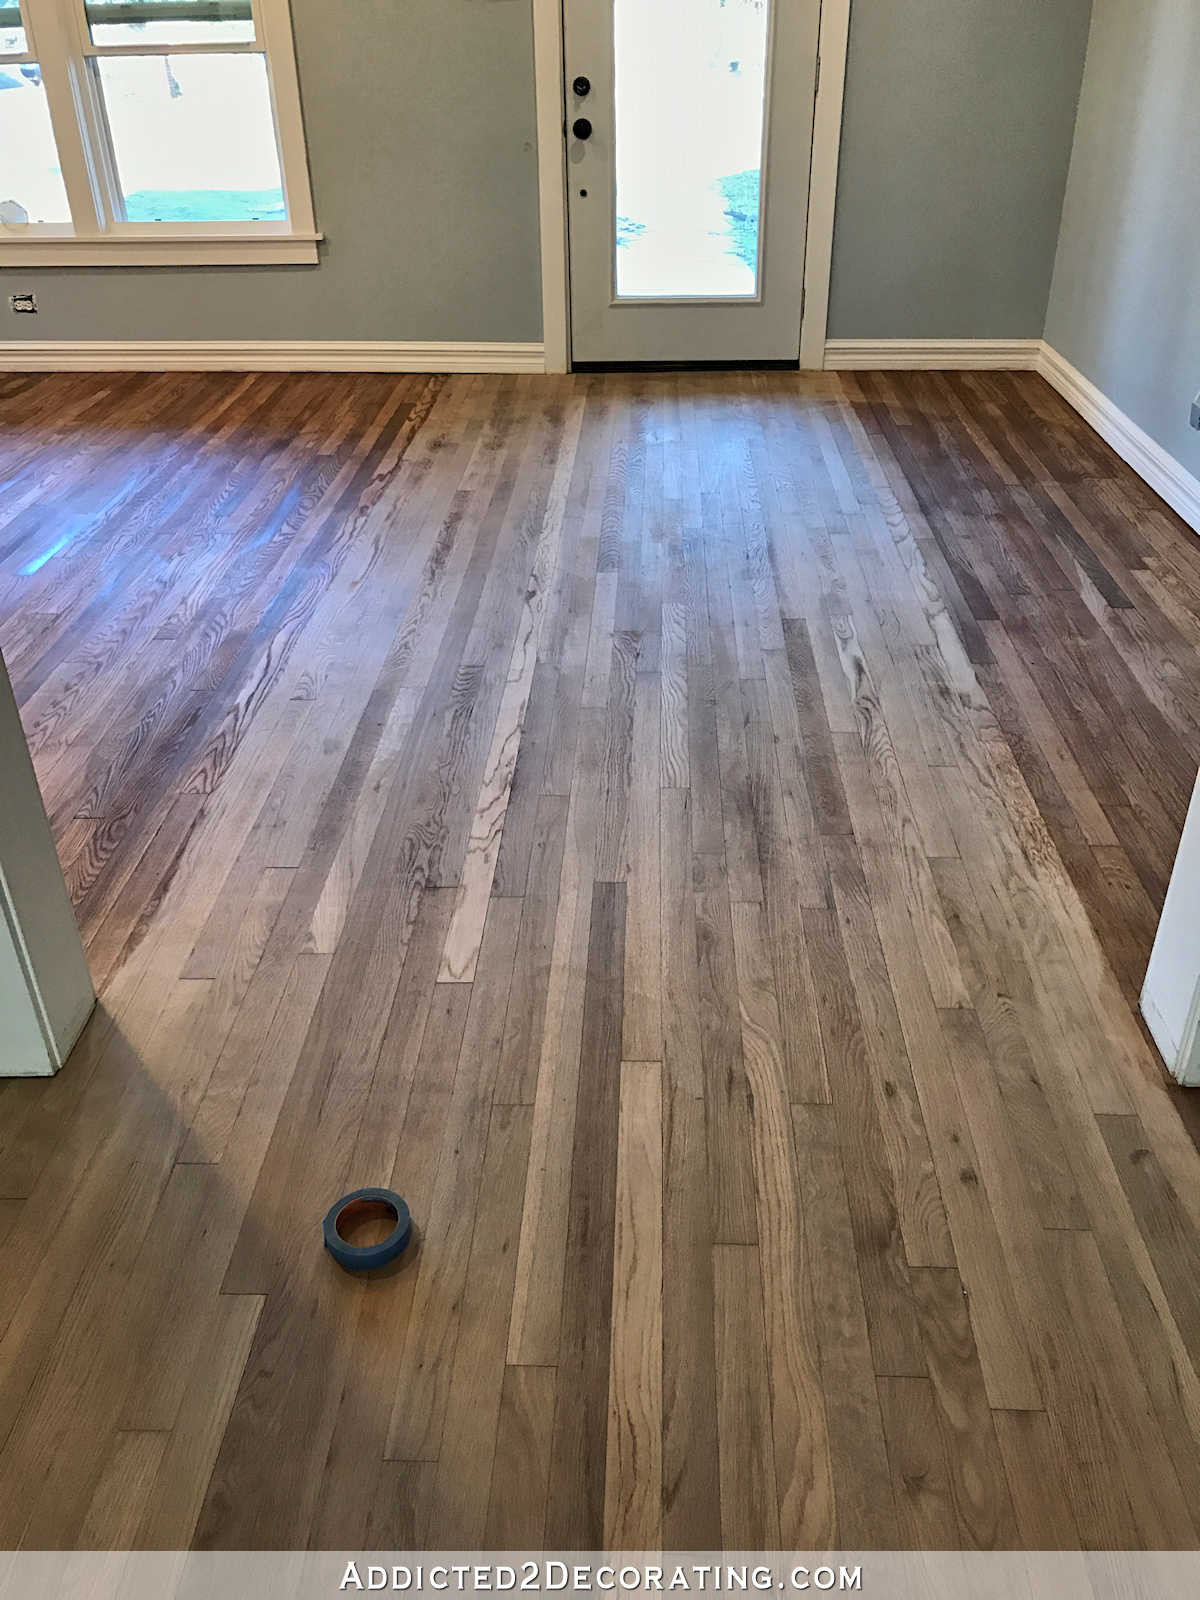 hardwood floor refinishing 2 or 3 coats of adventures in staining my red oak hardwood floors products process for staining red oak hardwood floors 4 entryway and living room wood conditioner